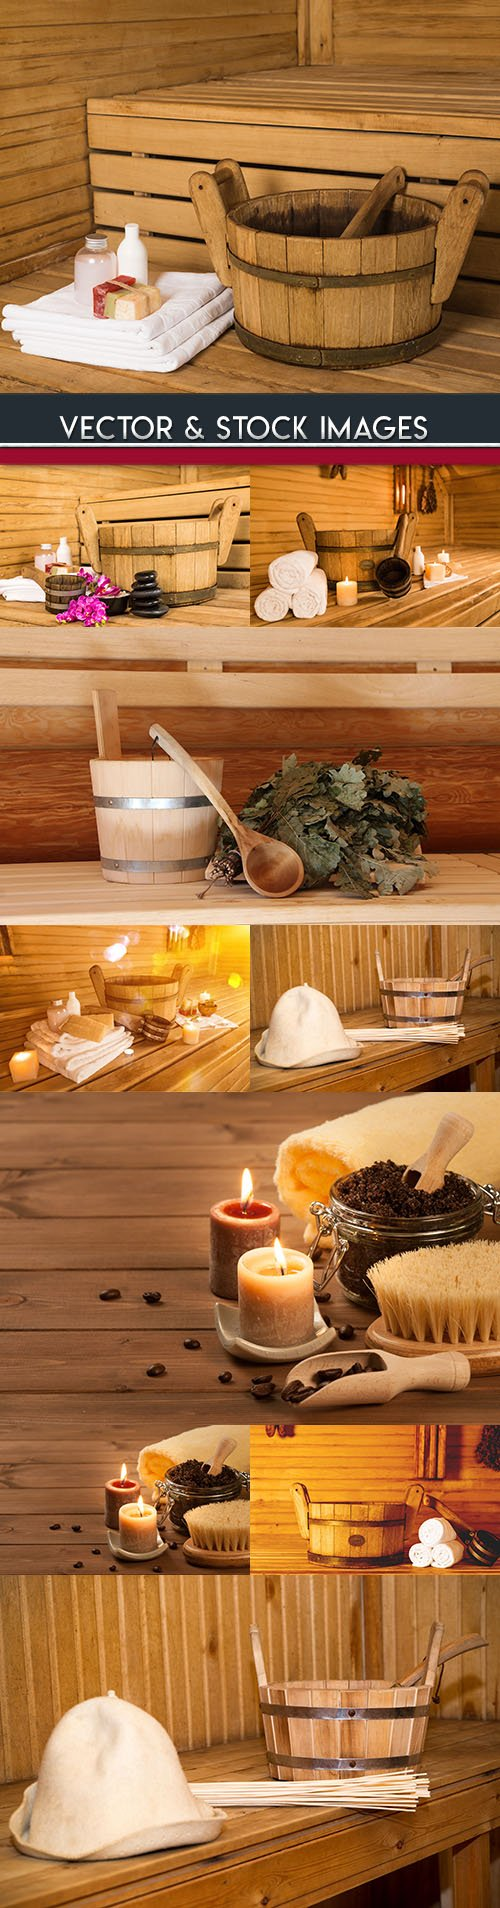 Sauna and Spa procedures for health and beauty